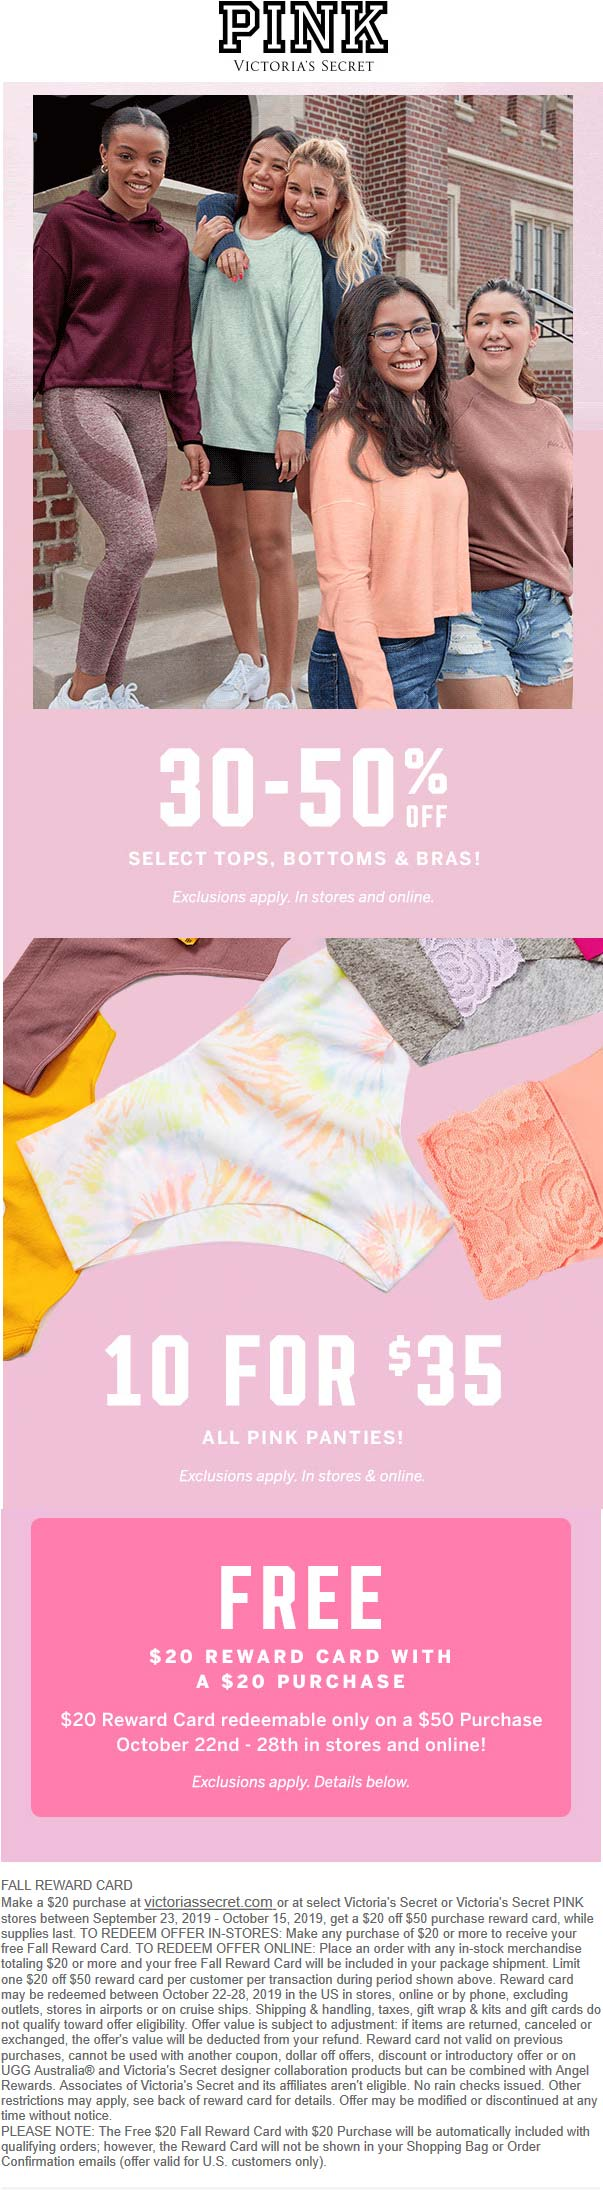 Victorias Secret Coupon October 2019 30-50% off & more at Victorias Secret PINK, ditto online